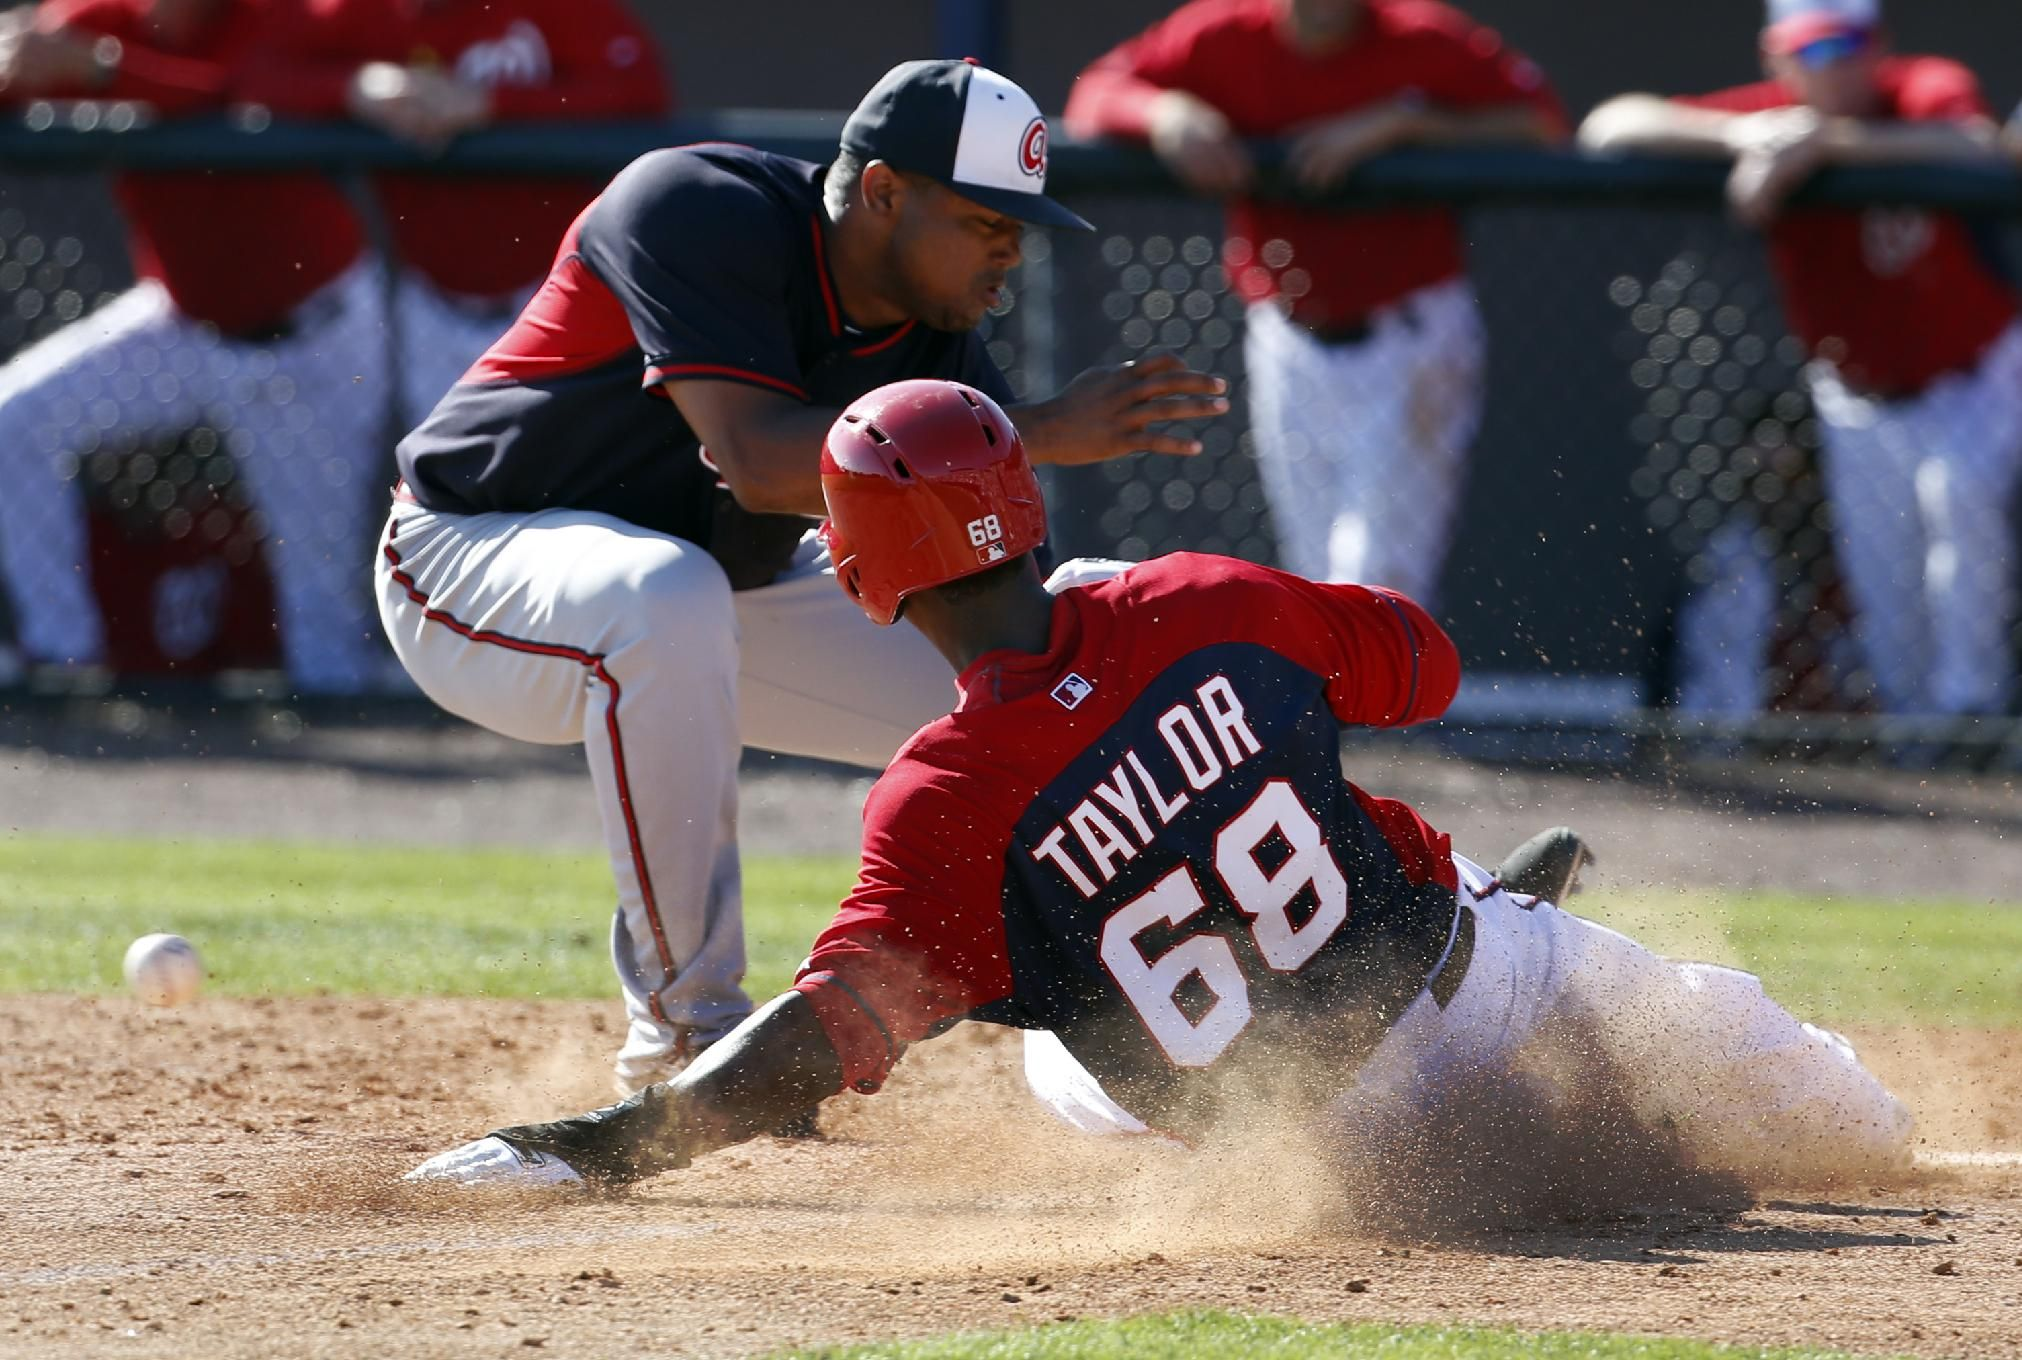 Washington Nationals' Michael Taylor slides safely into home as Atlanta Braves relief pitcher Juan Jaime can't handle throw after a passed ball, in the fifth inning of an exhibition baseball game, Saturday, March 1, 2014, in Viera, Fla. The Nationals won 16-15. (AP Photo/Alex Brandon)